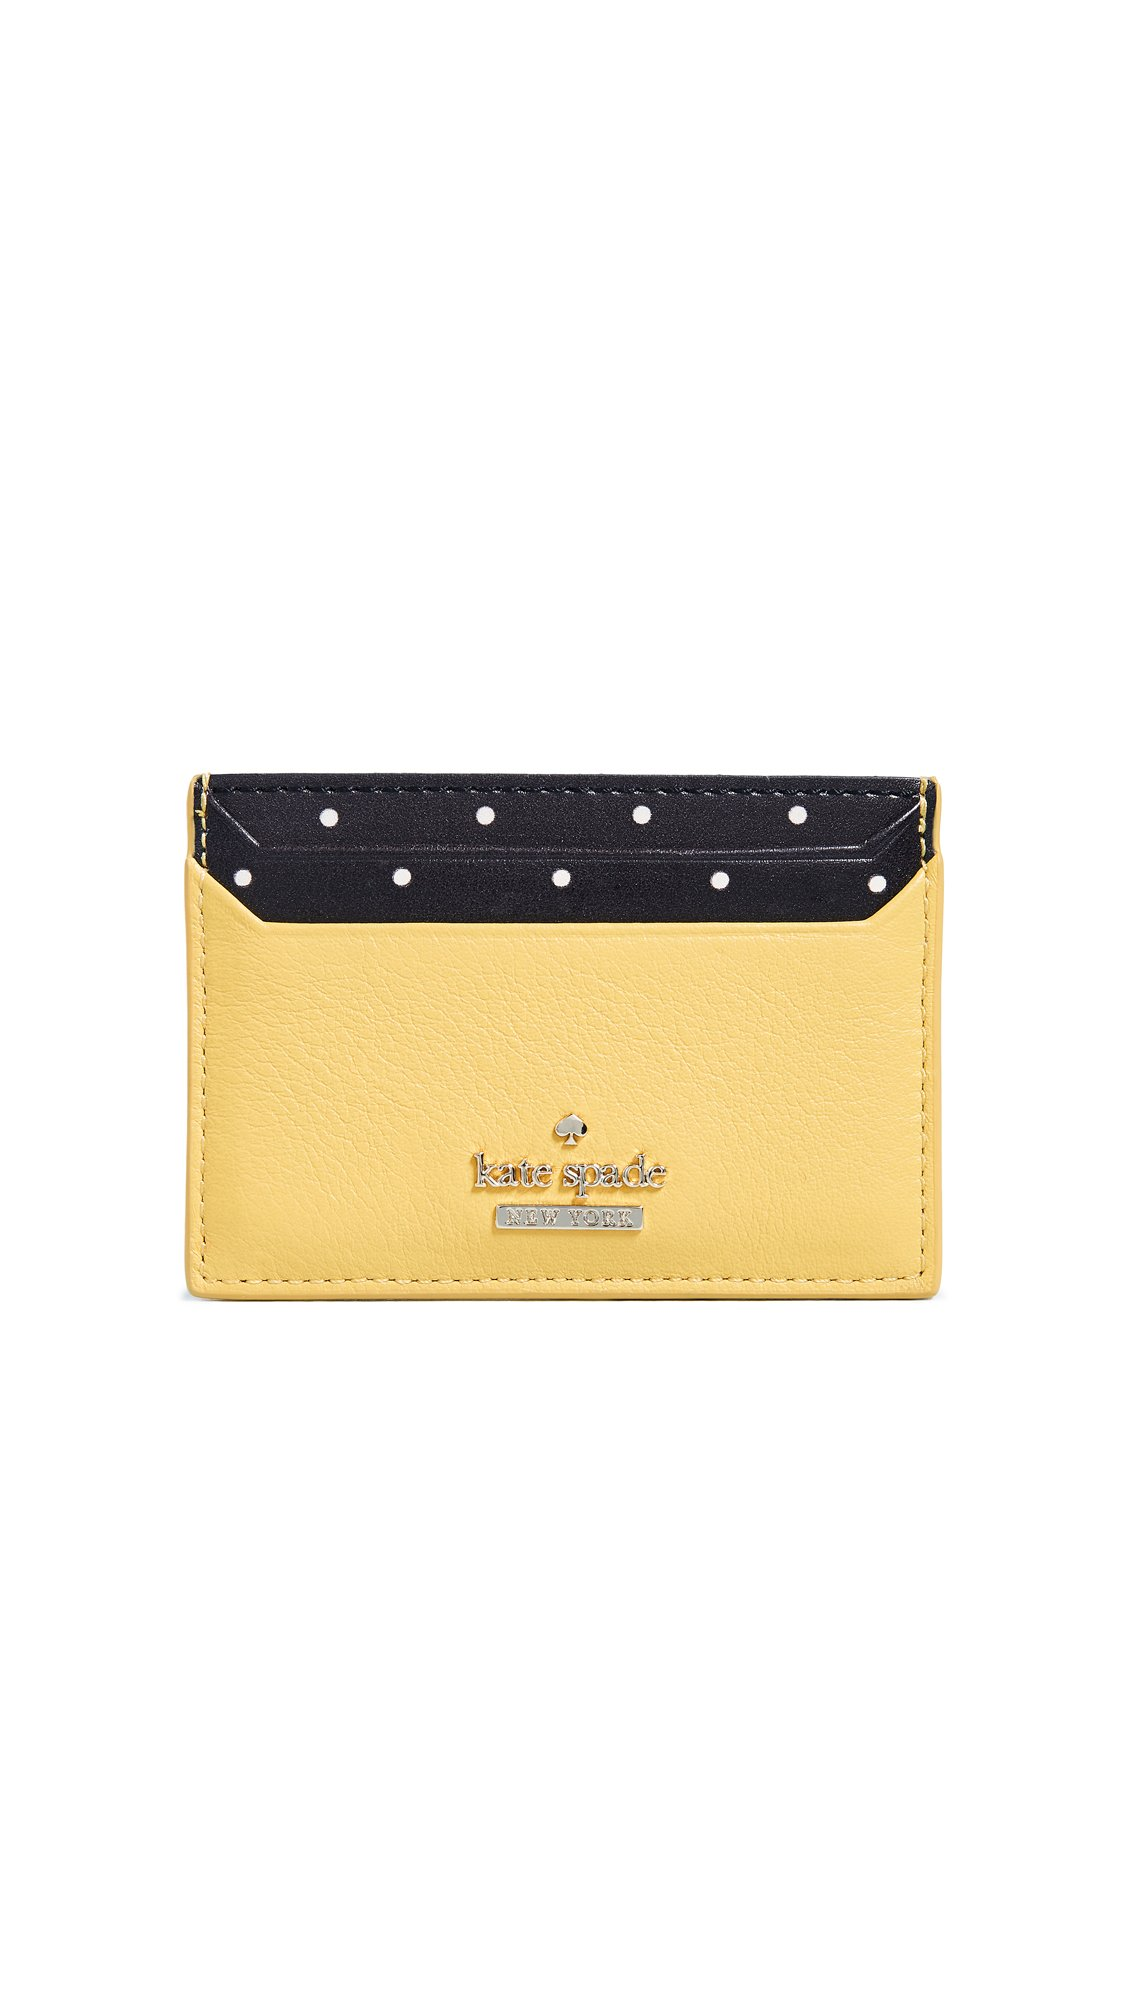 Kate Spade New York Women's Blake Street Lynleigh Card Case, Primrose, One Size